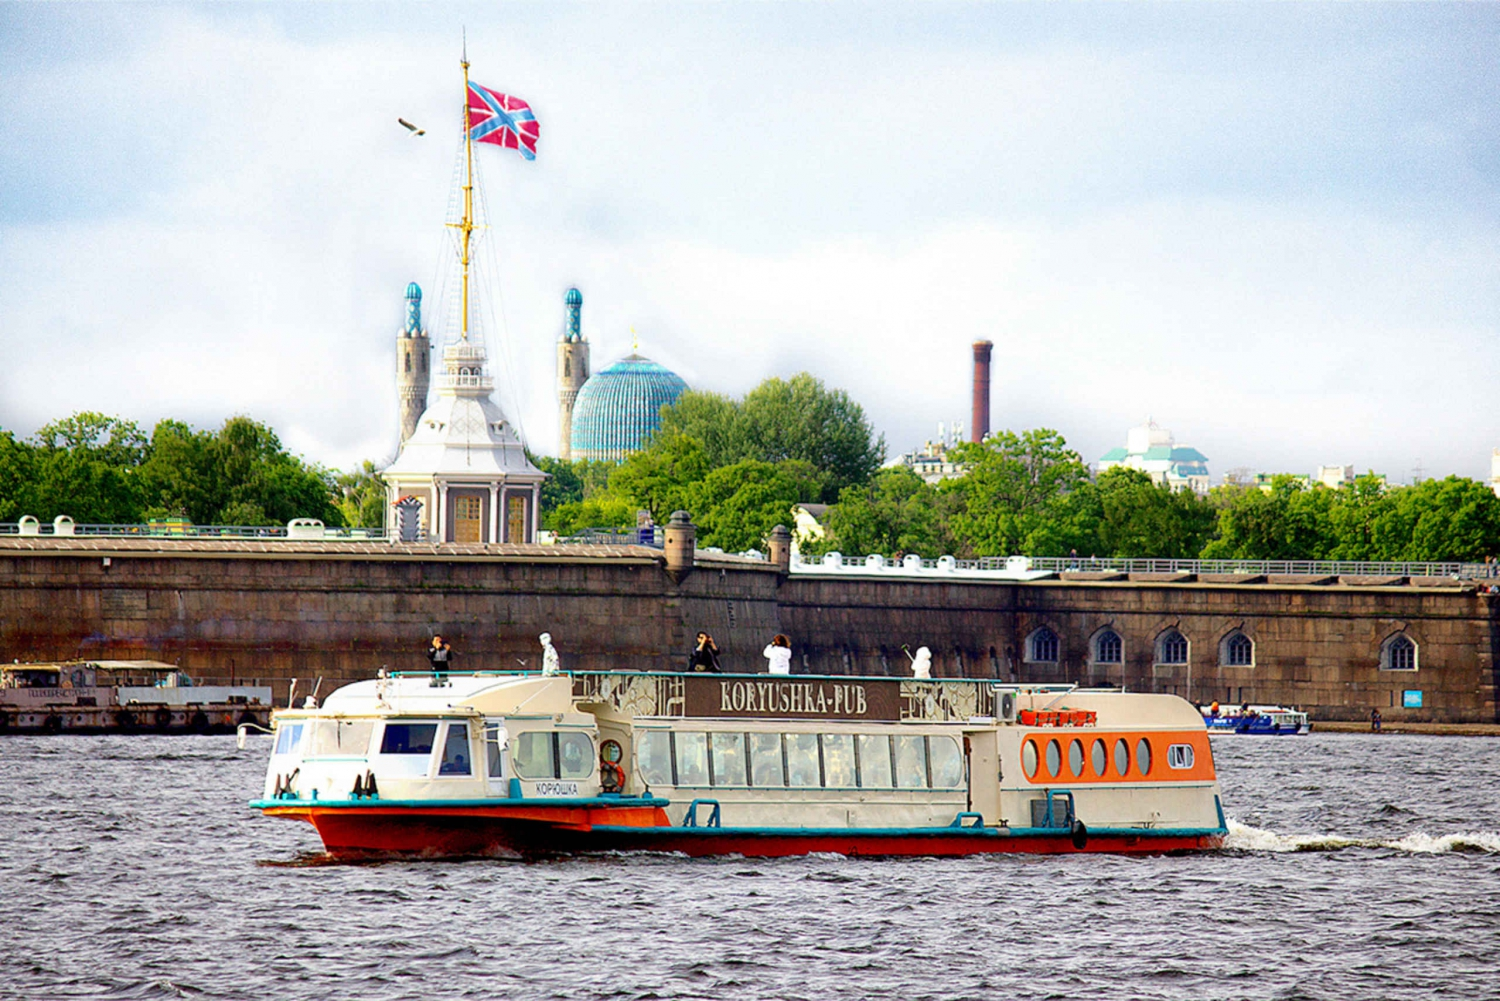 St. Petersburg: Northern Islands Cruise with Audioguide